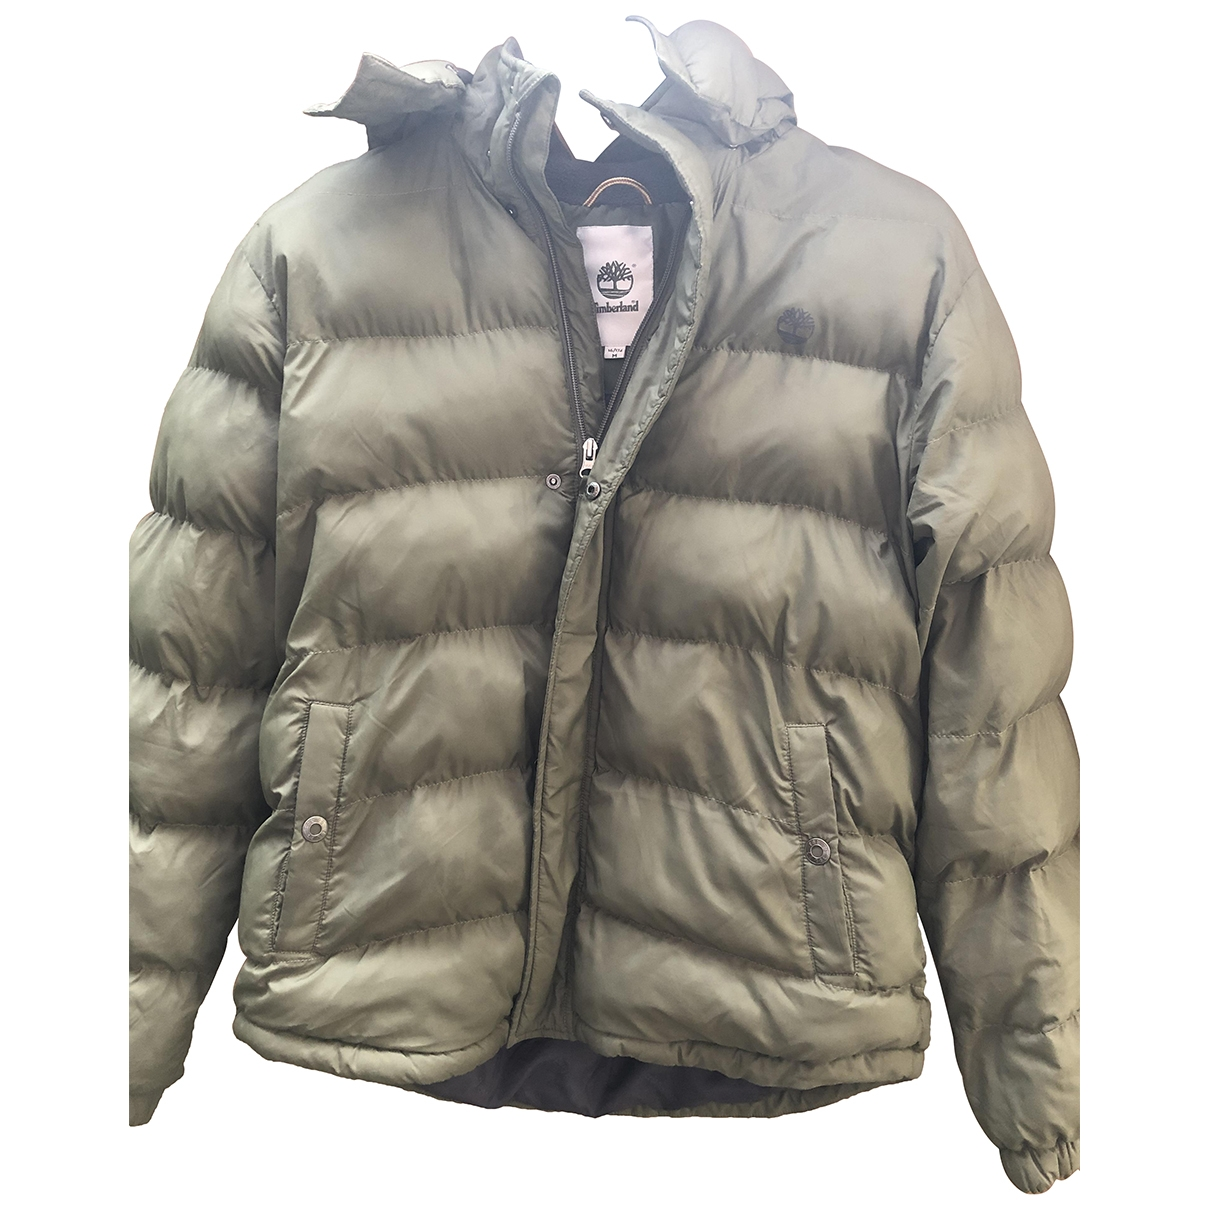 Timberland \N Green jacket & coat for Kids 16 years - M FR